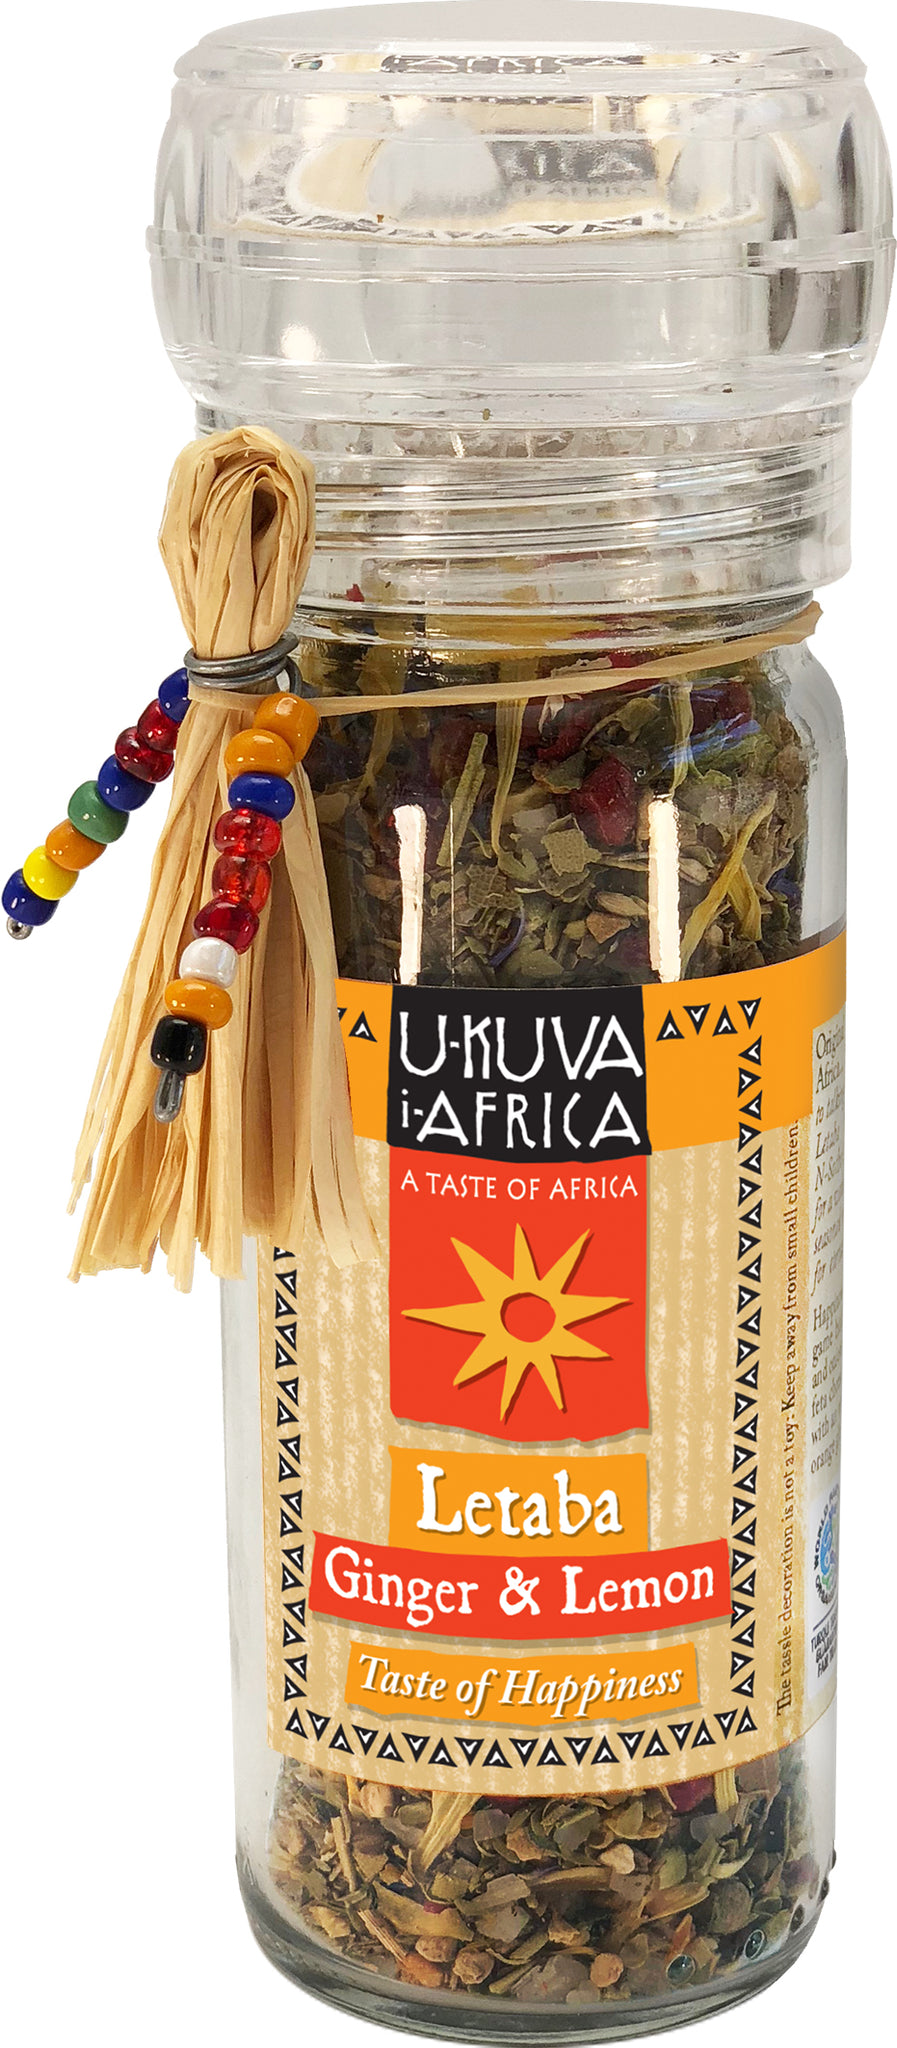 Grinder - Letaba Ginger & Lemon Happiness Salt - Ukuva iAfrica